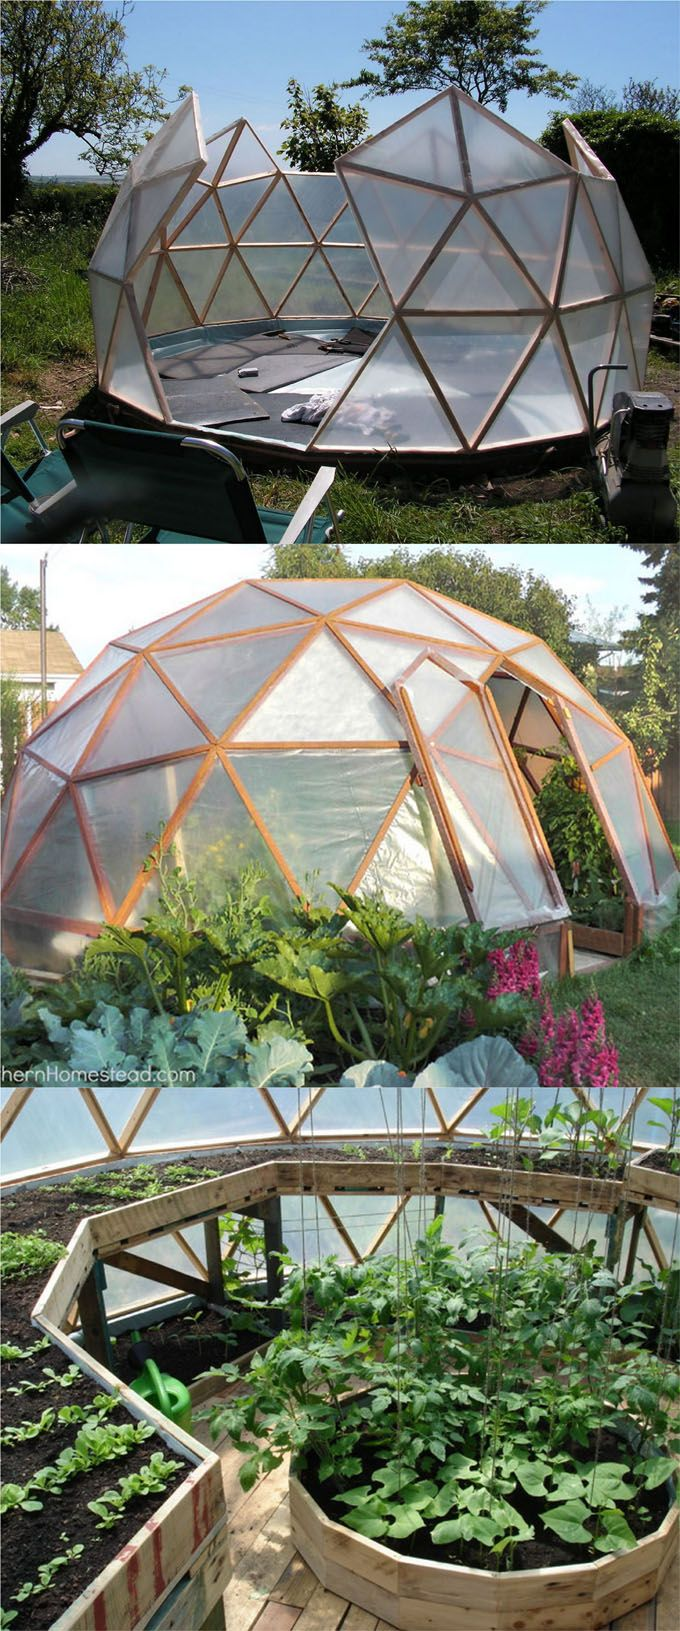 21 DIY Greenhouses with Great Tutorials: Ultimate collection of THE BEST…